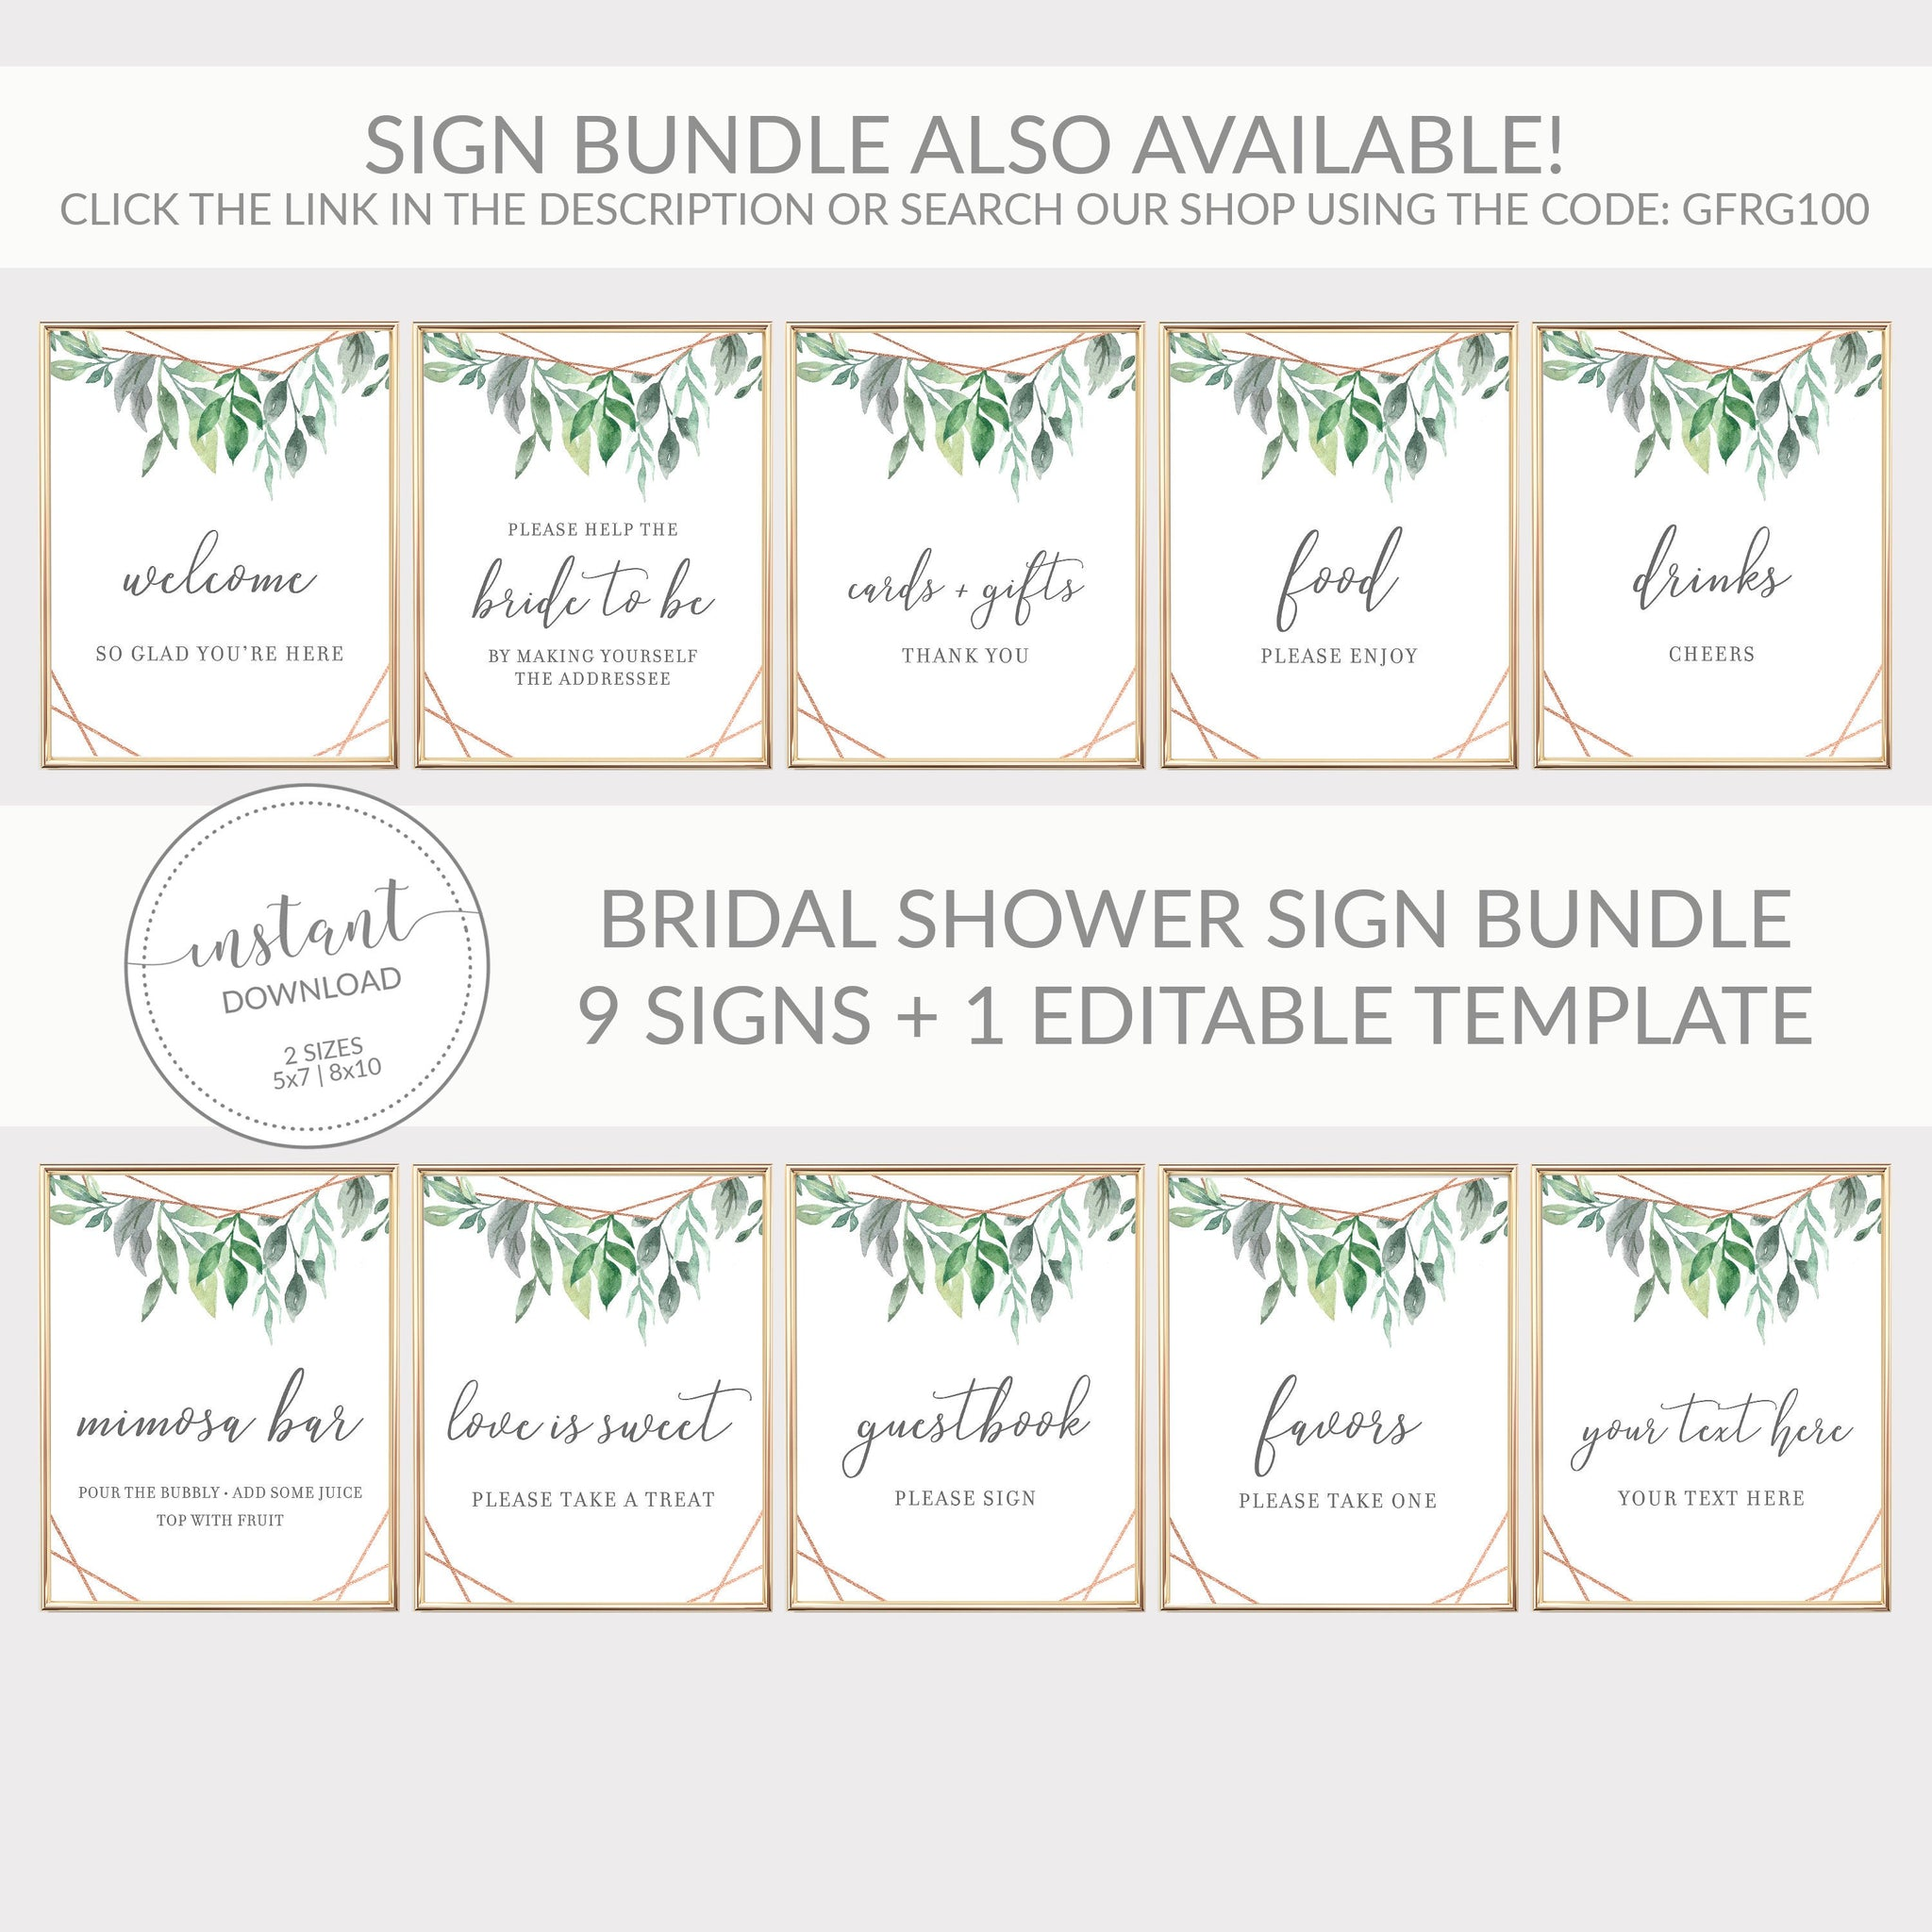 Geometric Rose Gold Greenery Printable Bridal Shower Address an Envelope Sign INSTANT DOWNLOAD, Bridal Shower Decorations Supplies - GFRG100 - @PlumPolkaDot